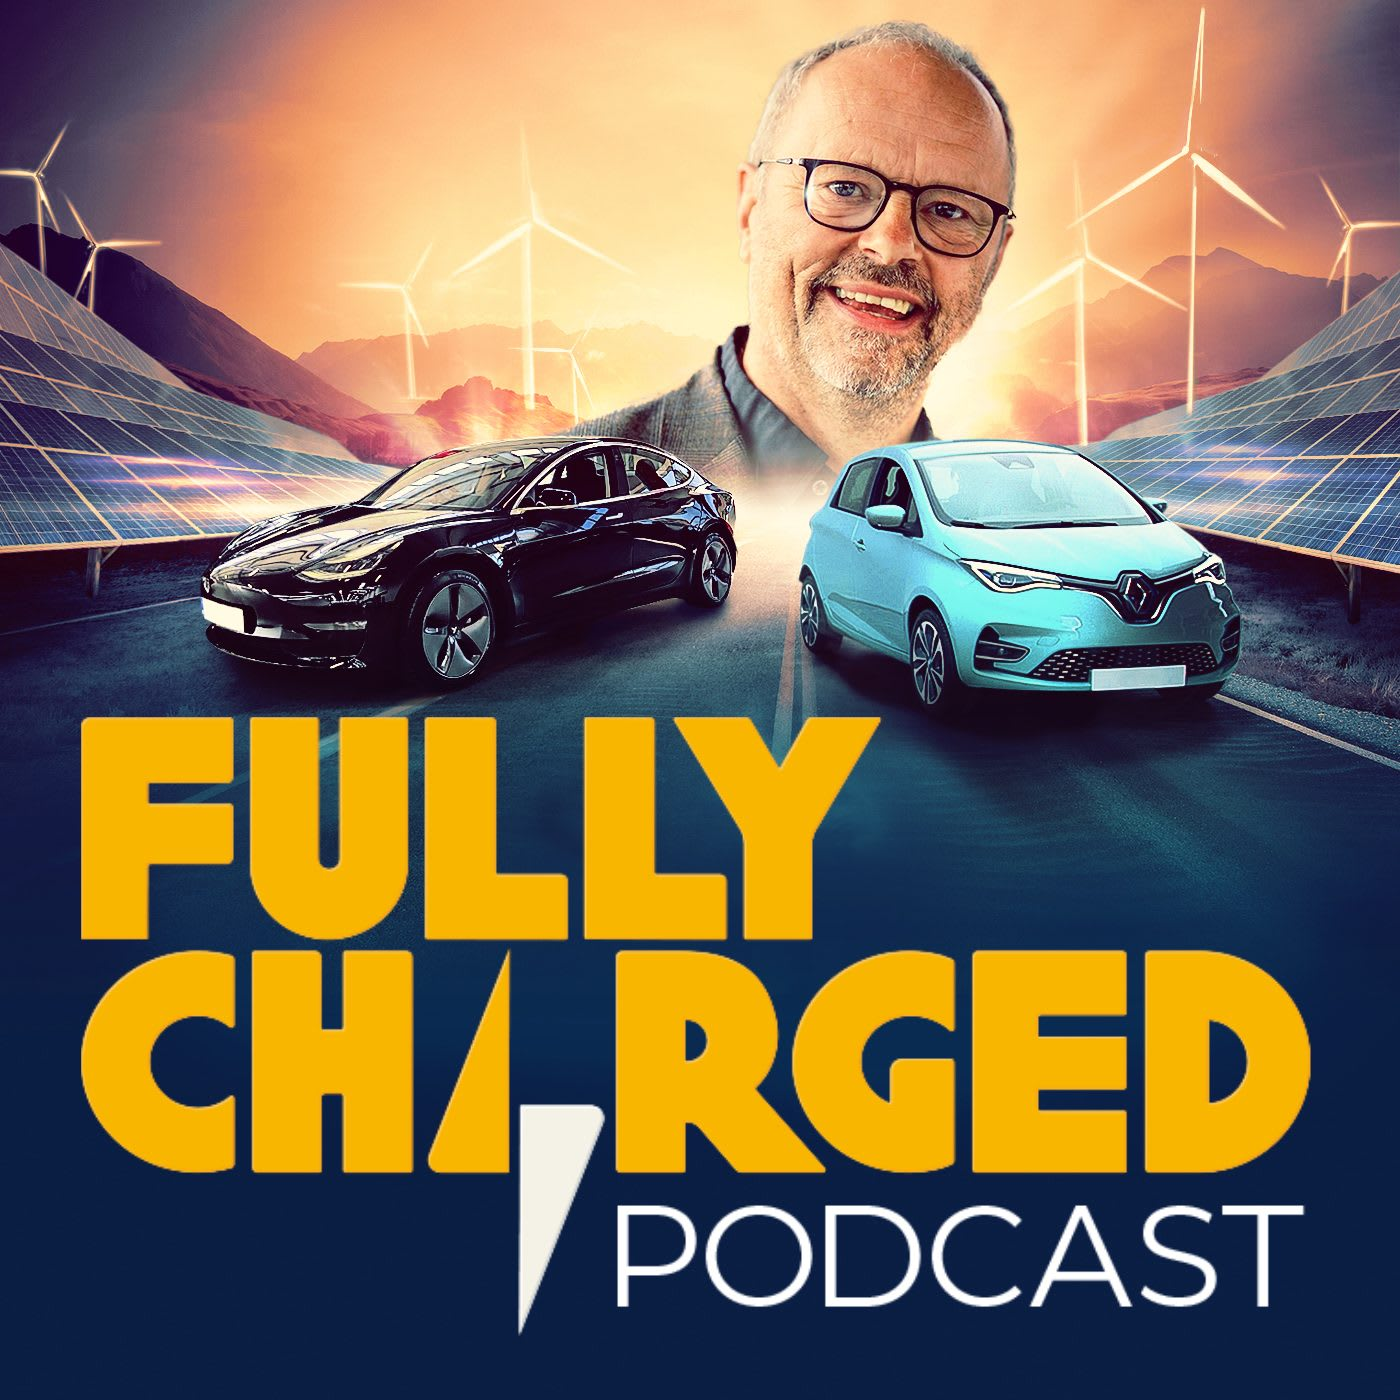 Fully Charged podcast on sustainability